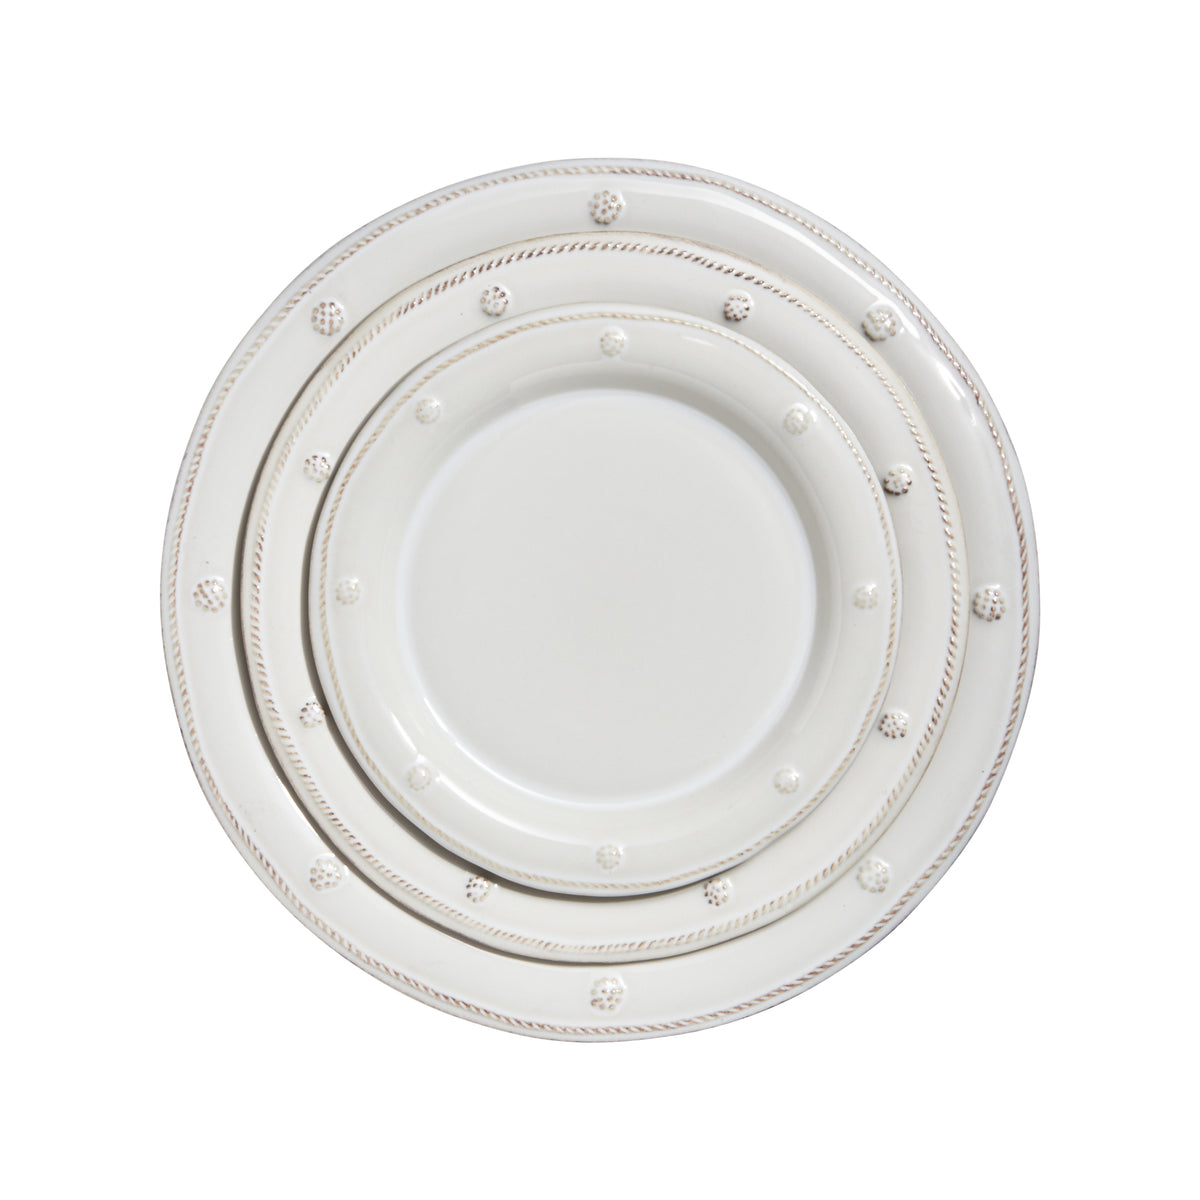 Berry and Thread White Dinner Plate